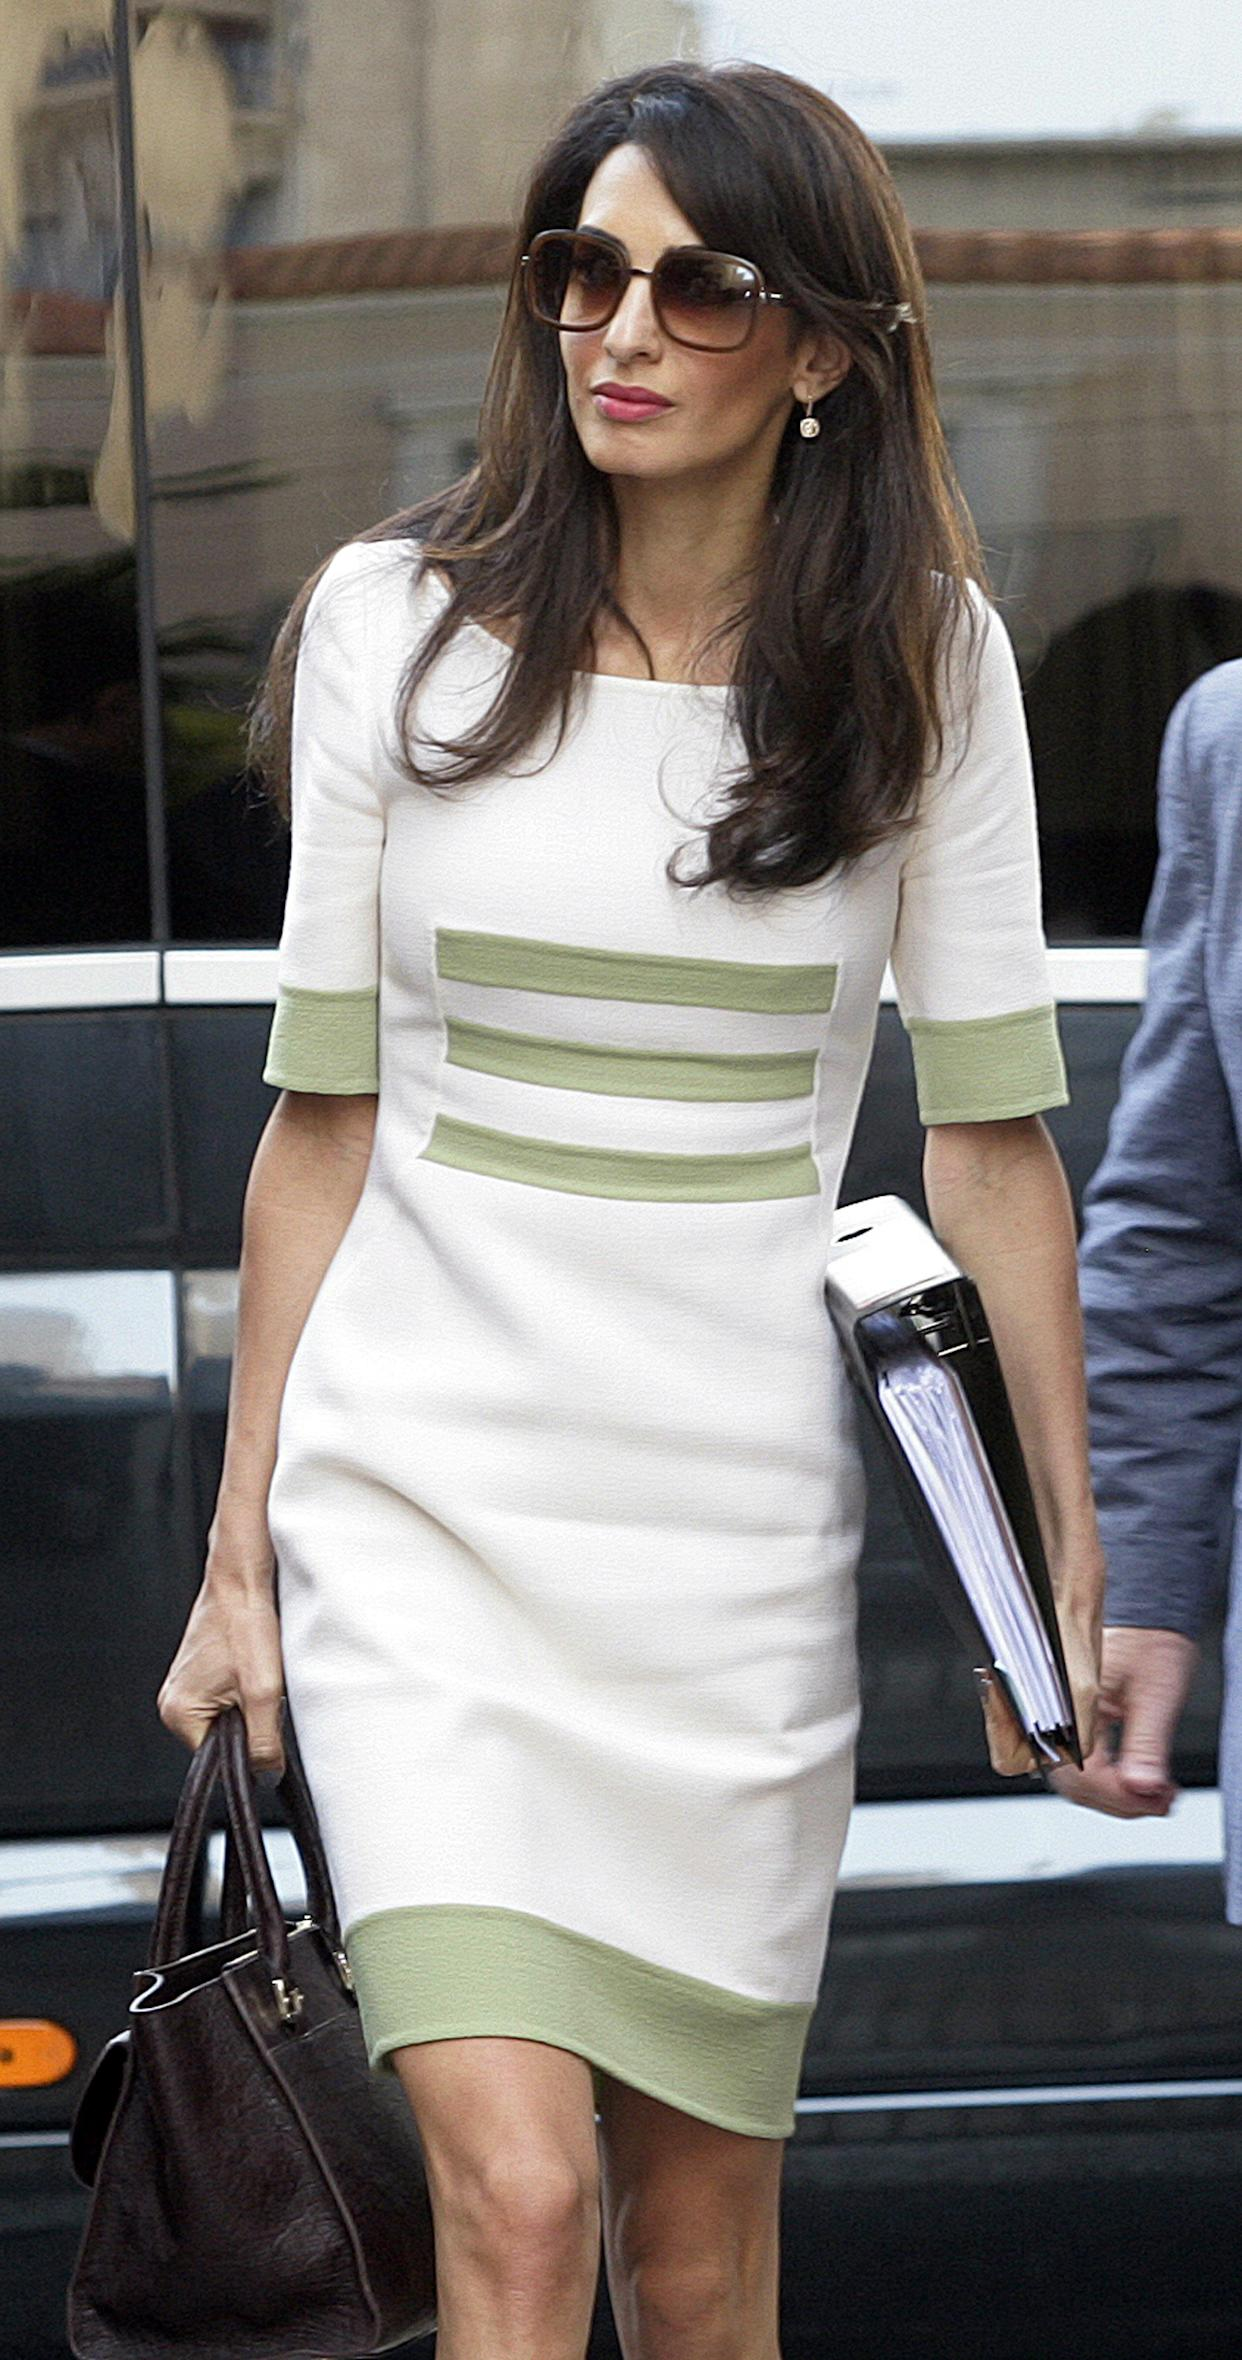 Amal Alamuddin Clooney Arrives in Athens to Advise on Return of Parthenon Marbles